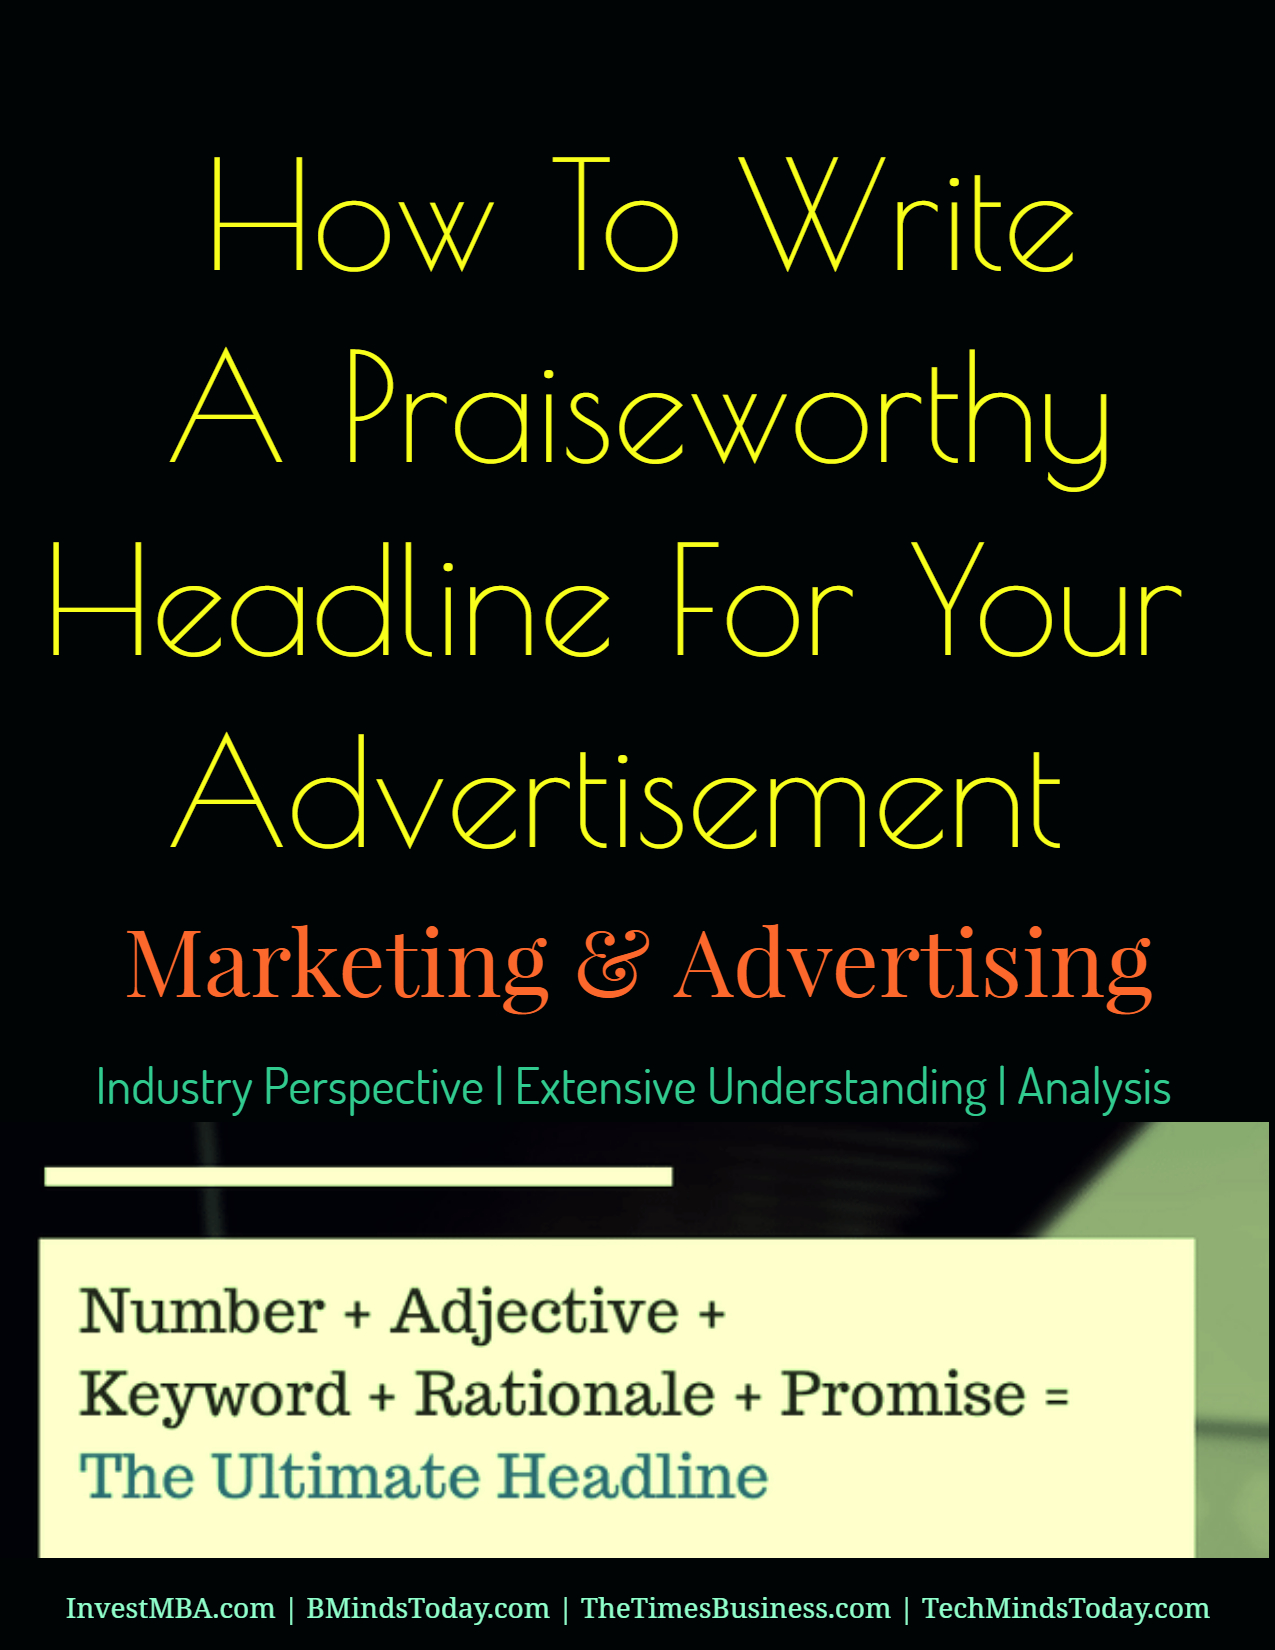 How To Develop A Praiseworthy Headline For Your Advertisement ? headline Writing A Praiseworthy Headline For Your Advertisement | Ad Titles How To Write A Praiseworthy Headline For Your Advertisement